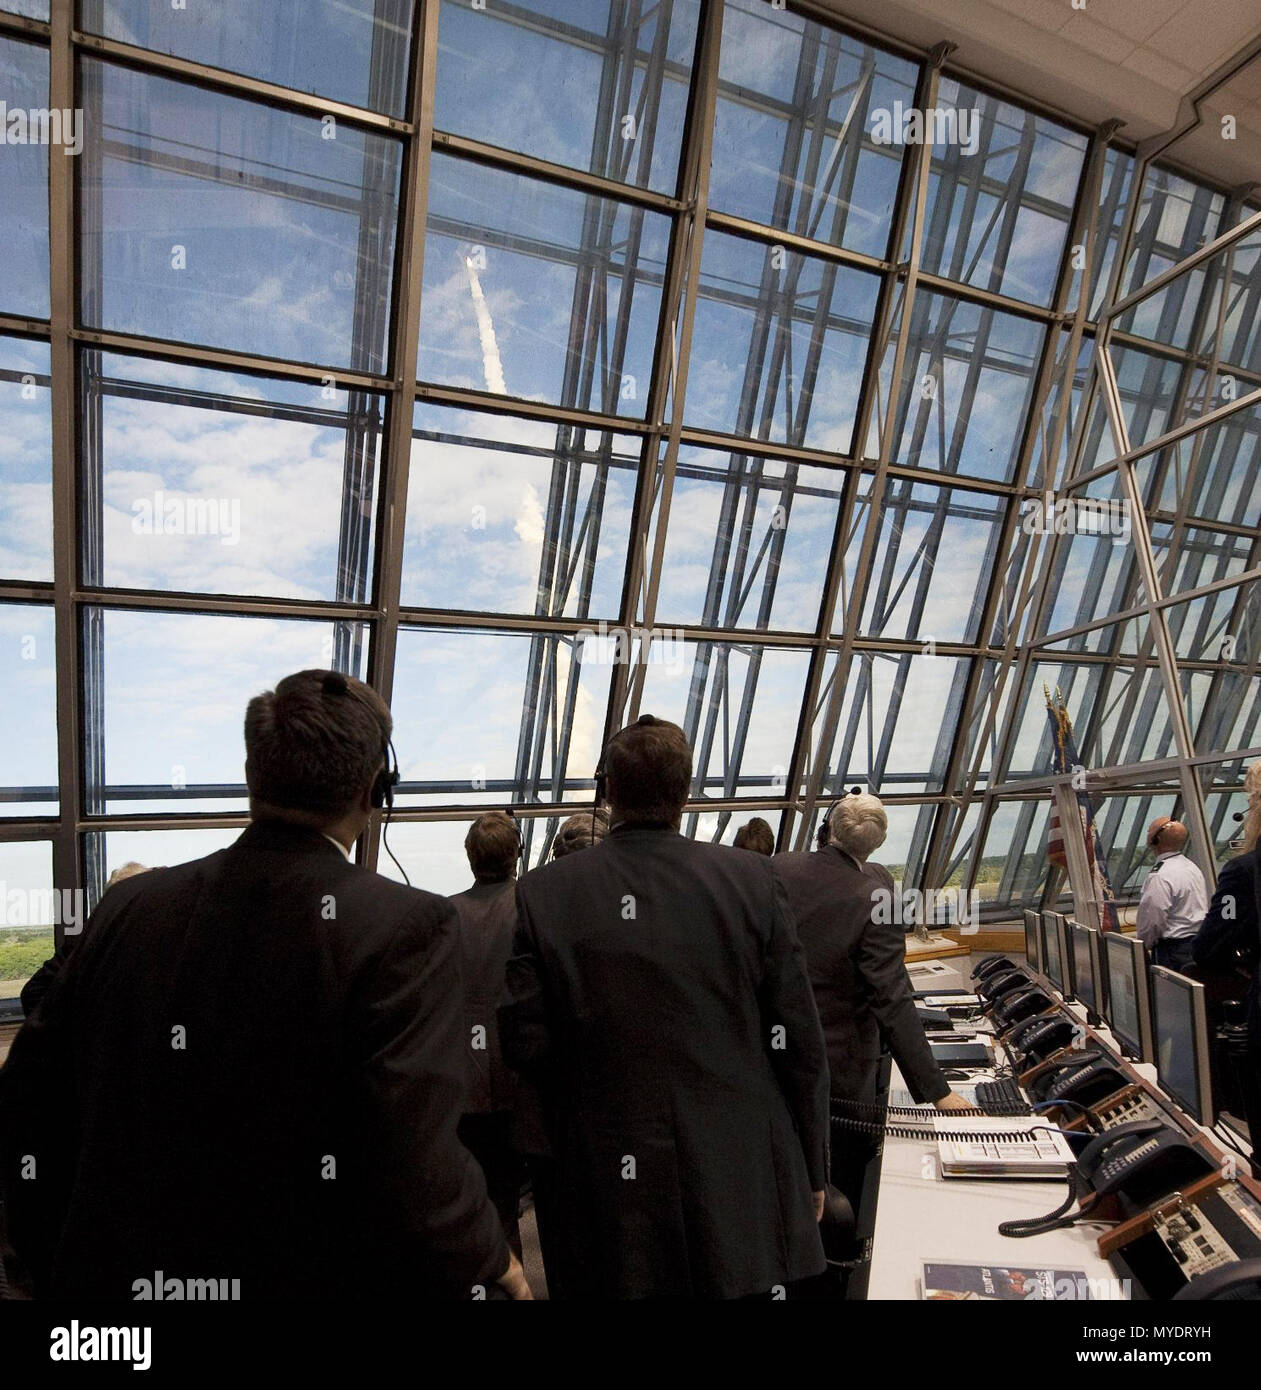 NASA mission managers monitor the launch of the space shuttle Atlantis from Firing Room Four of the NASA Kennedy Space Center, Monday, November 16, 2009. - Stock Image